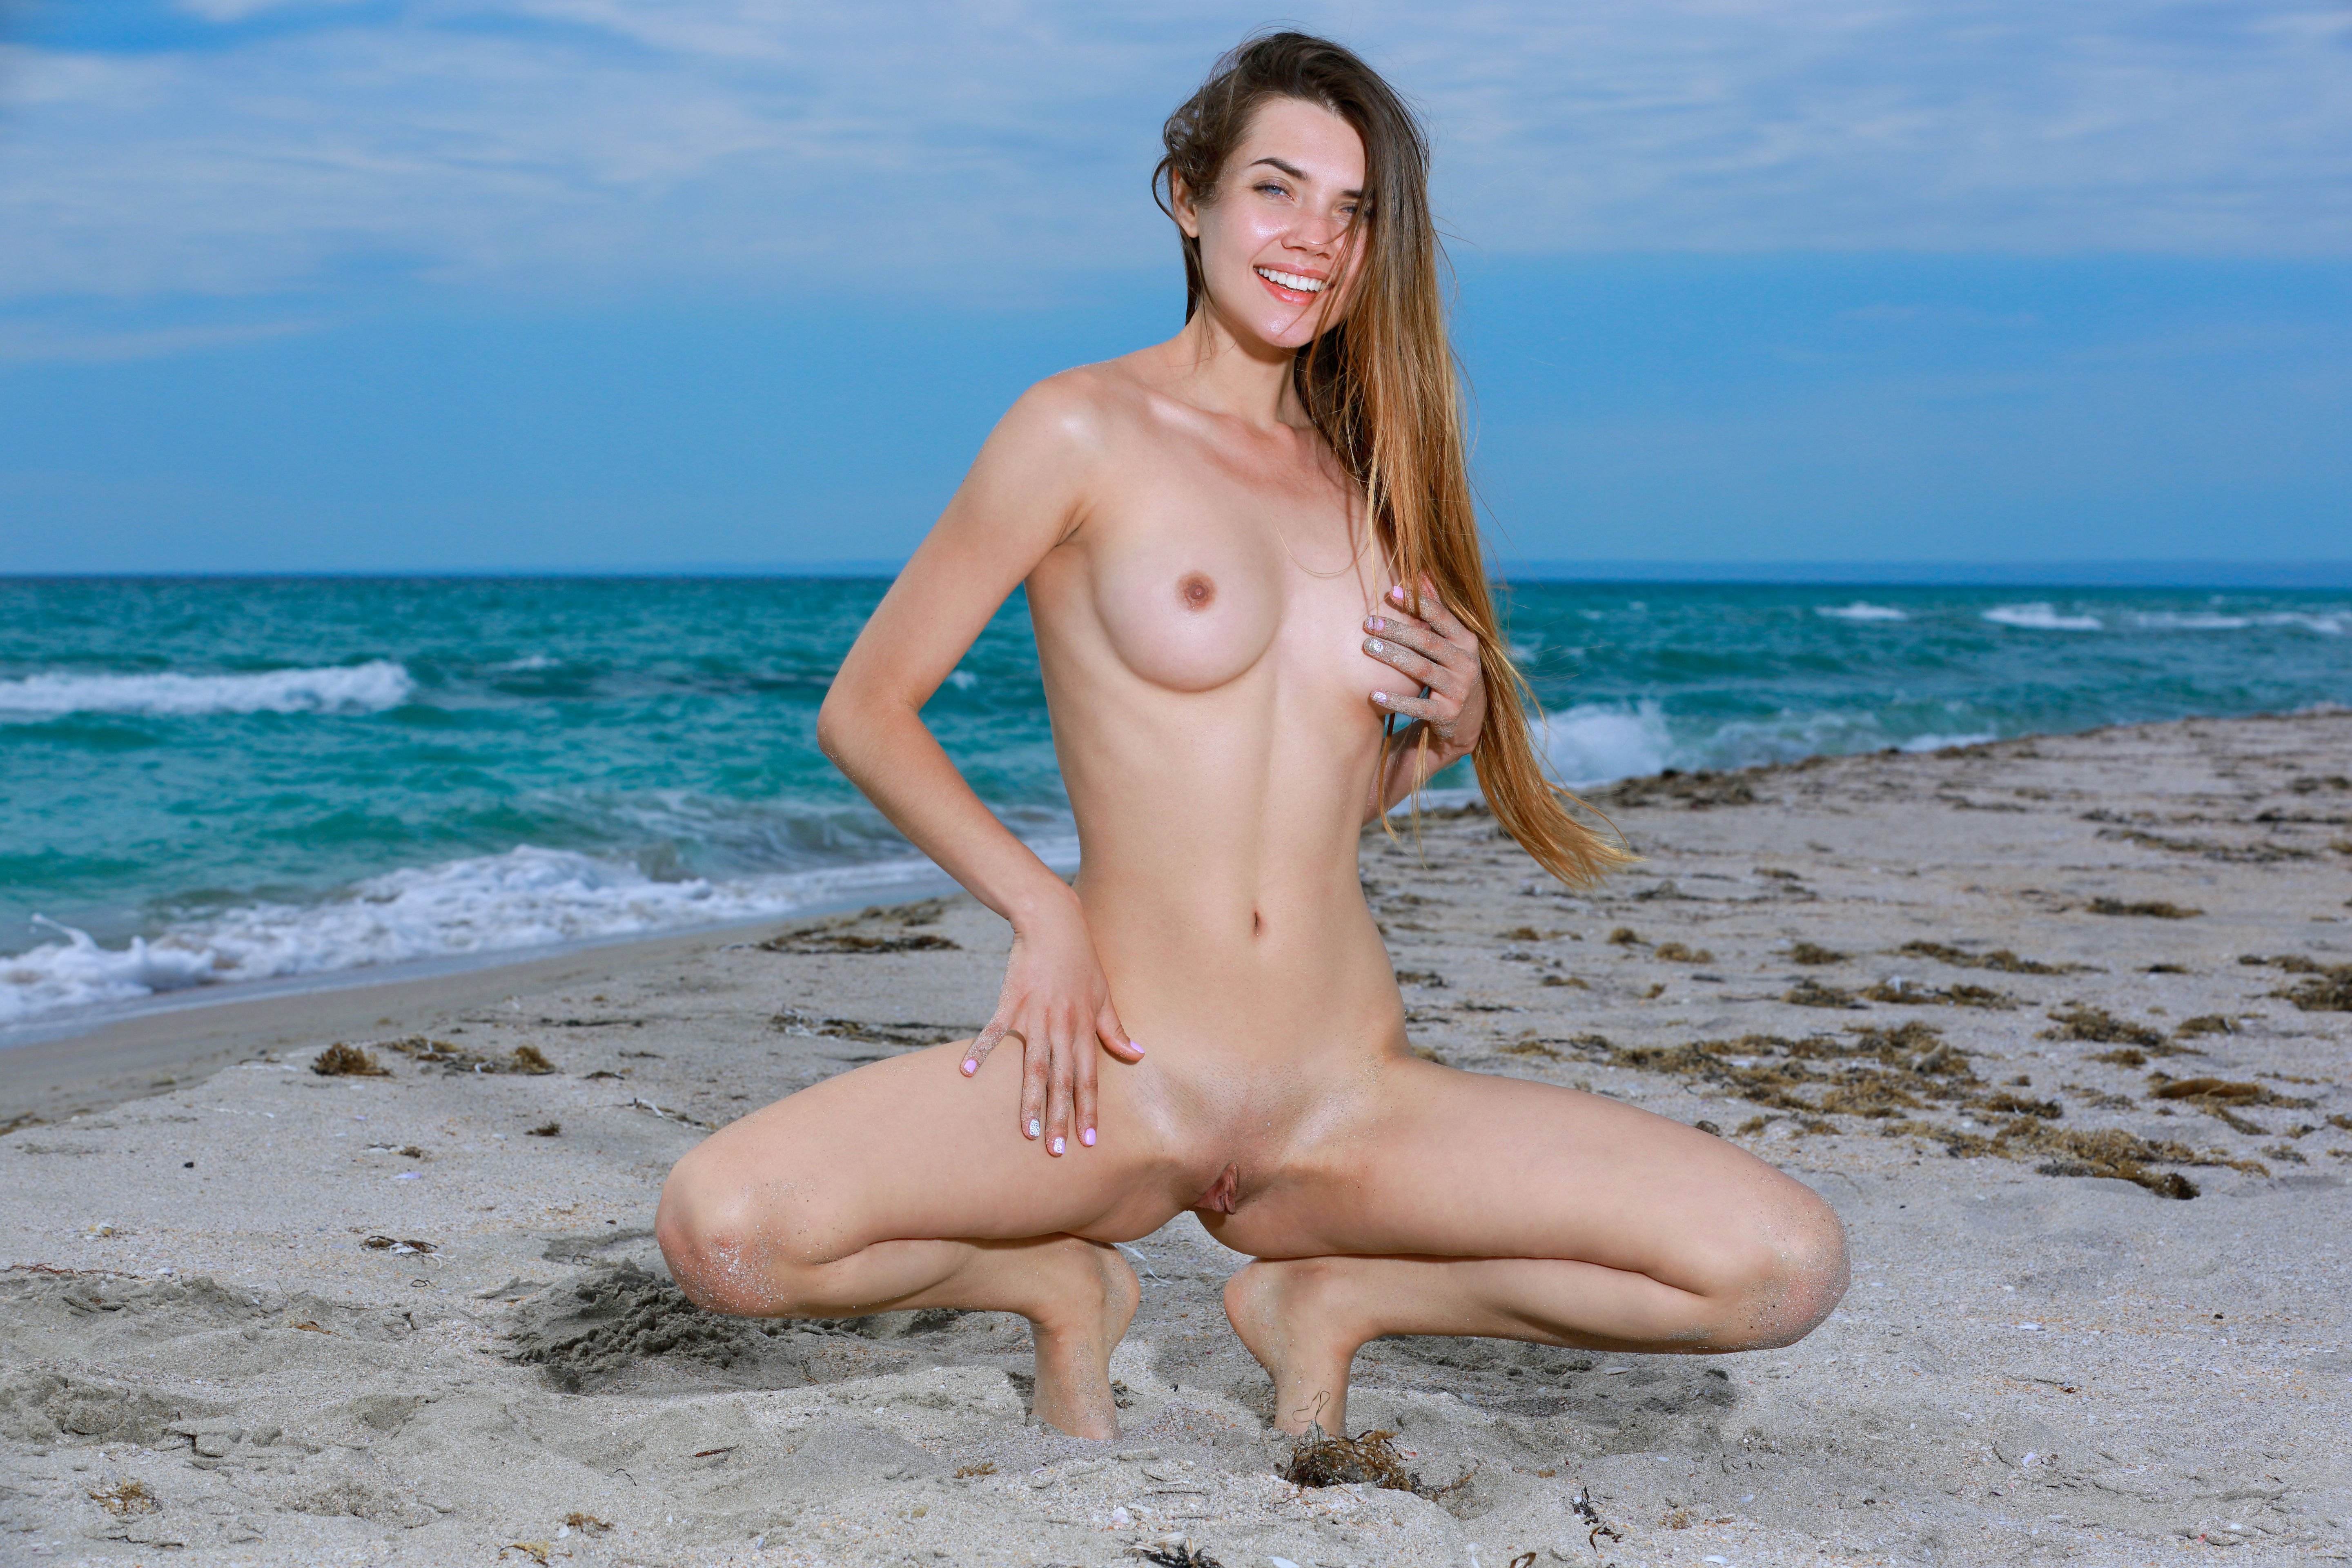 Agree, beach nude with legs apart seems me